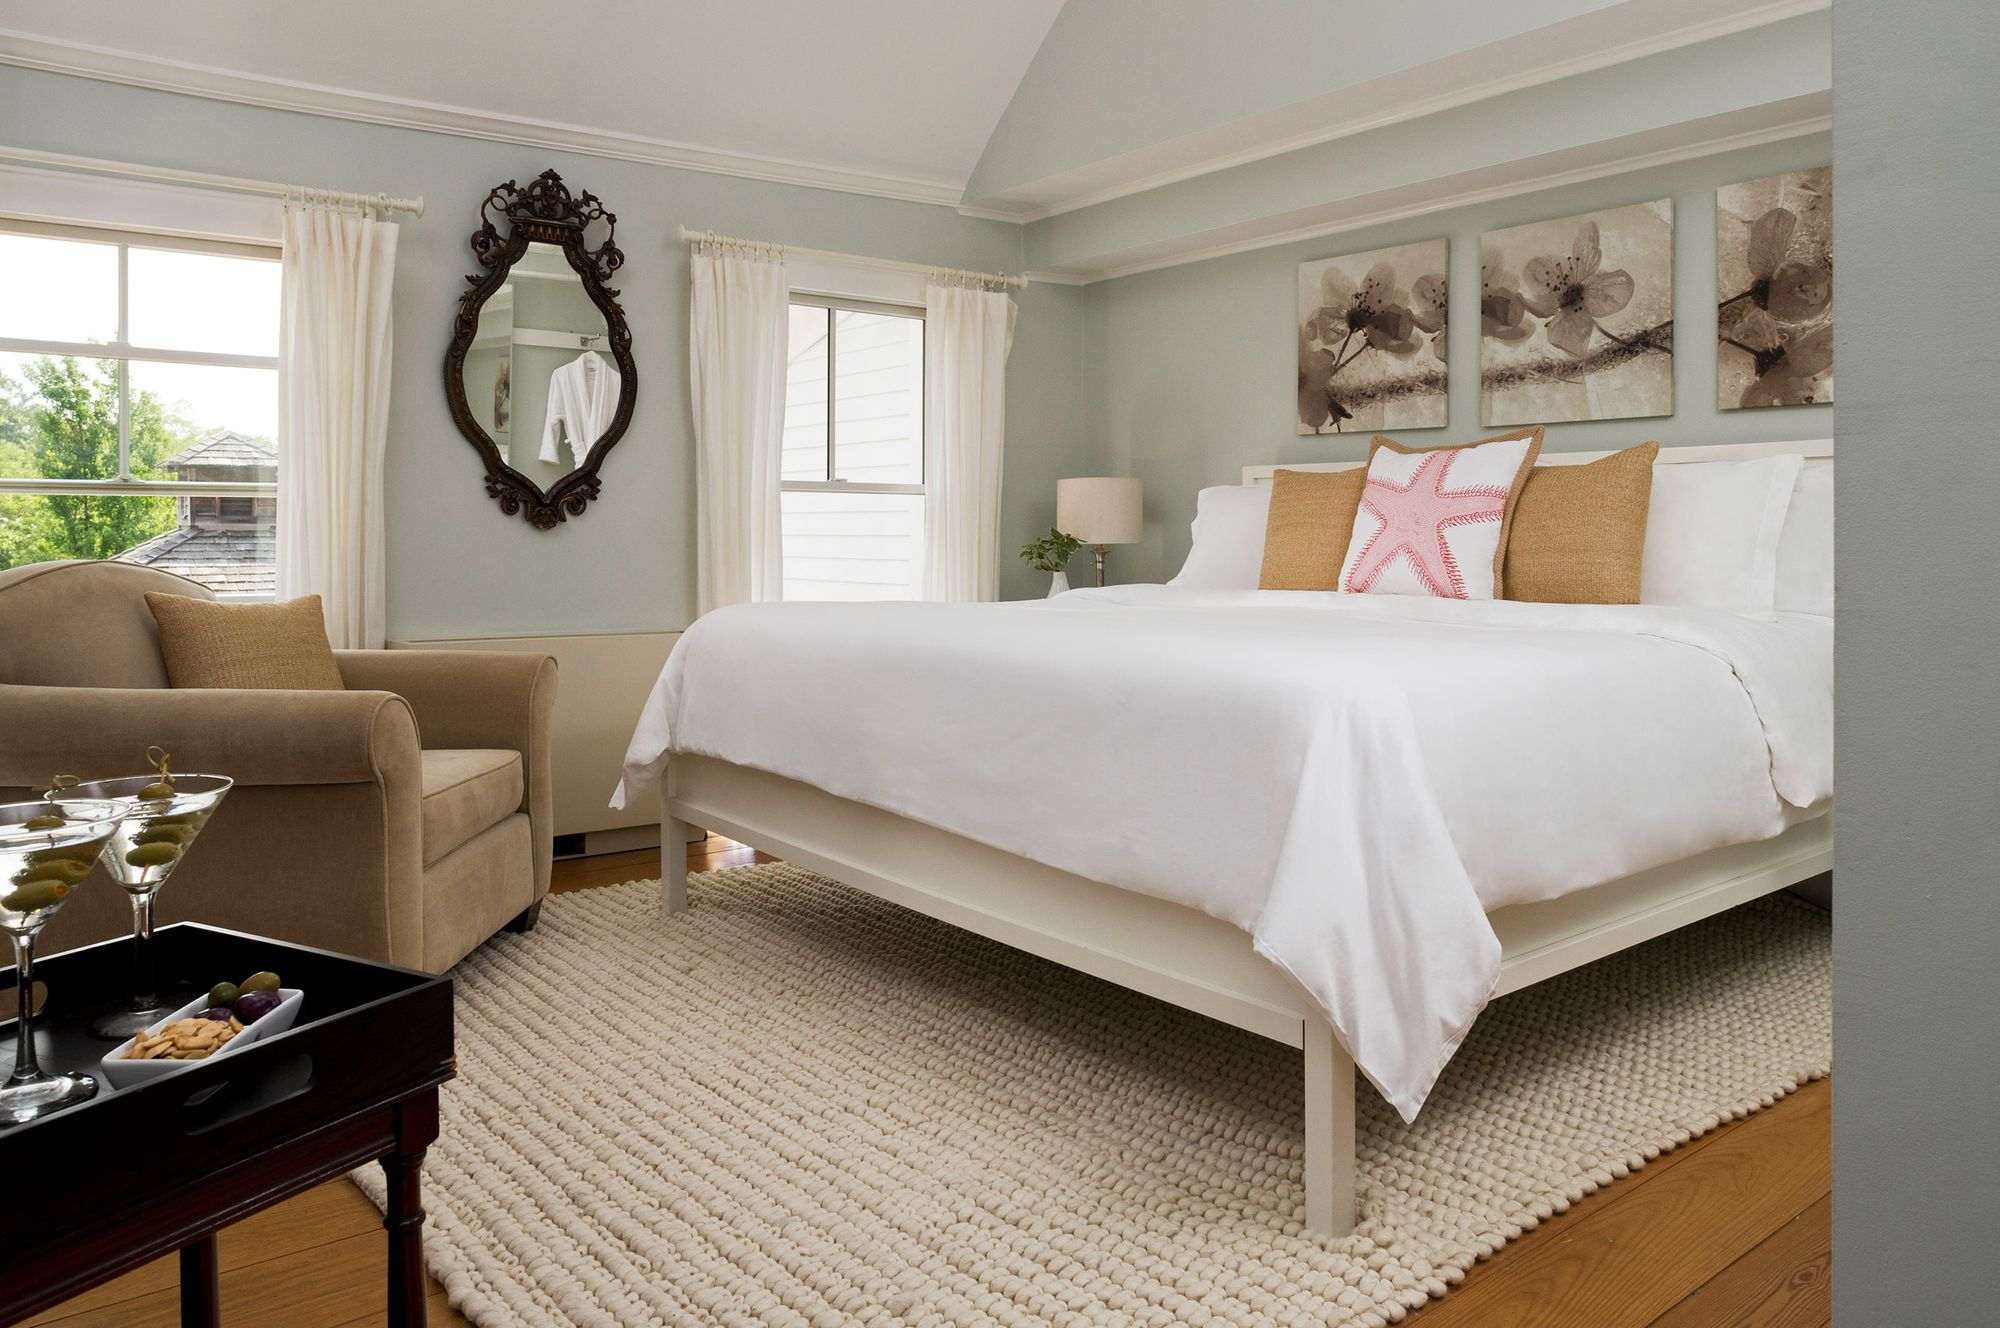 Shelter Island Inn guest room photograph.jpg